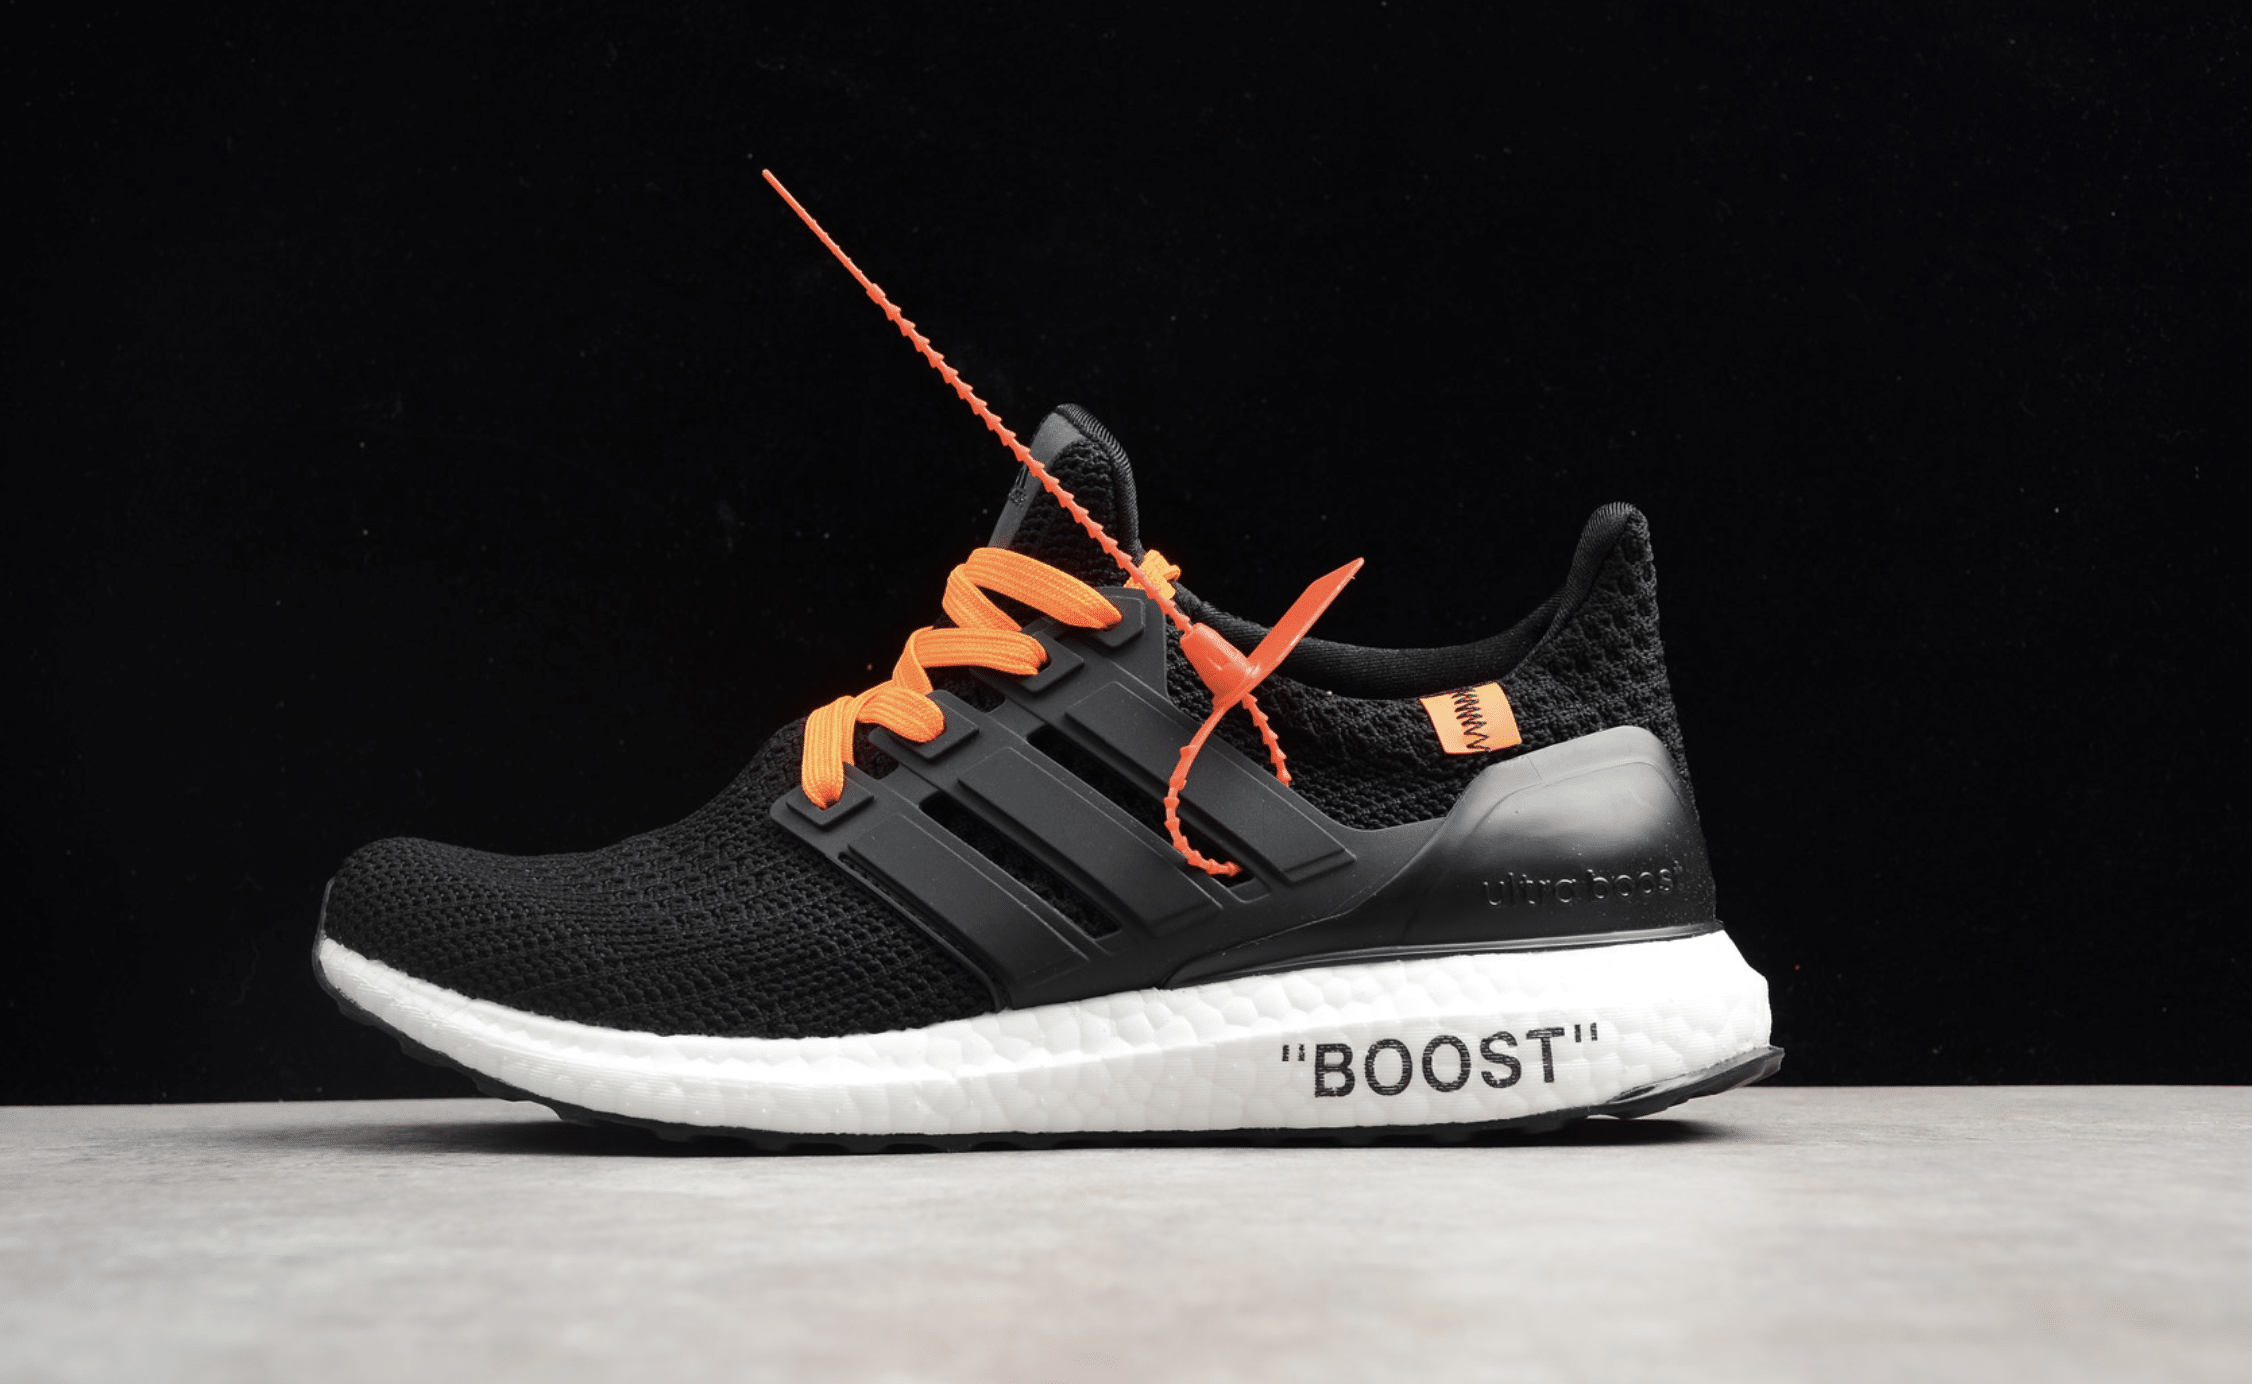 Adidas Ultra Boost Review 2018 - Are They Still The King Of Comfort?